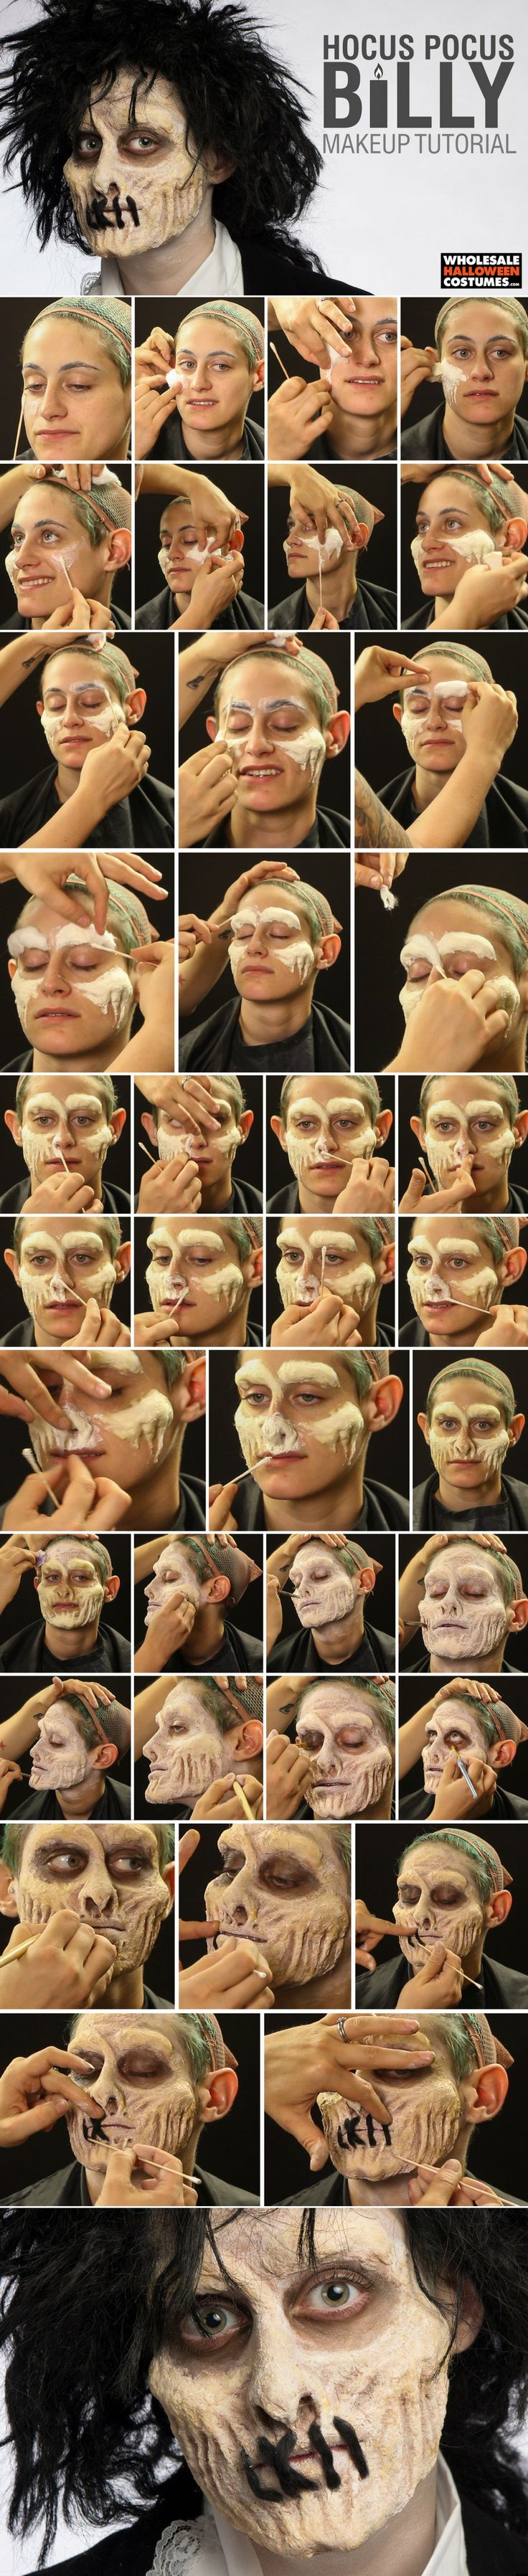 Become part of the Sanderson Sisters' squad with this Billy from Hocus Pocus makeup tutorial!